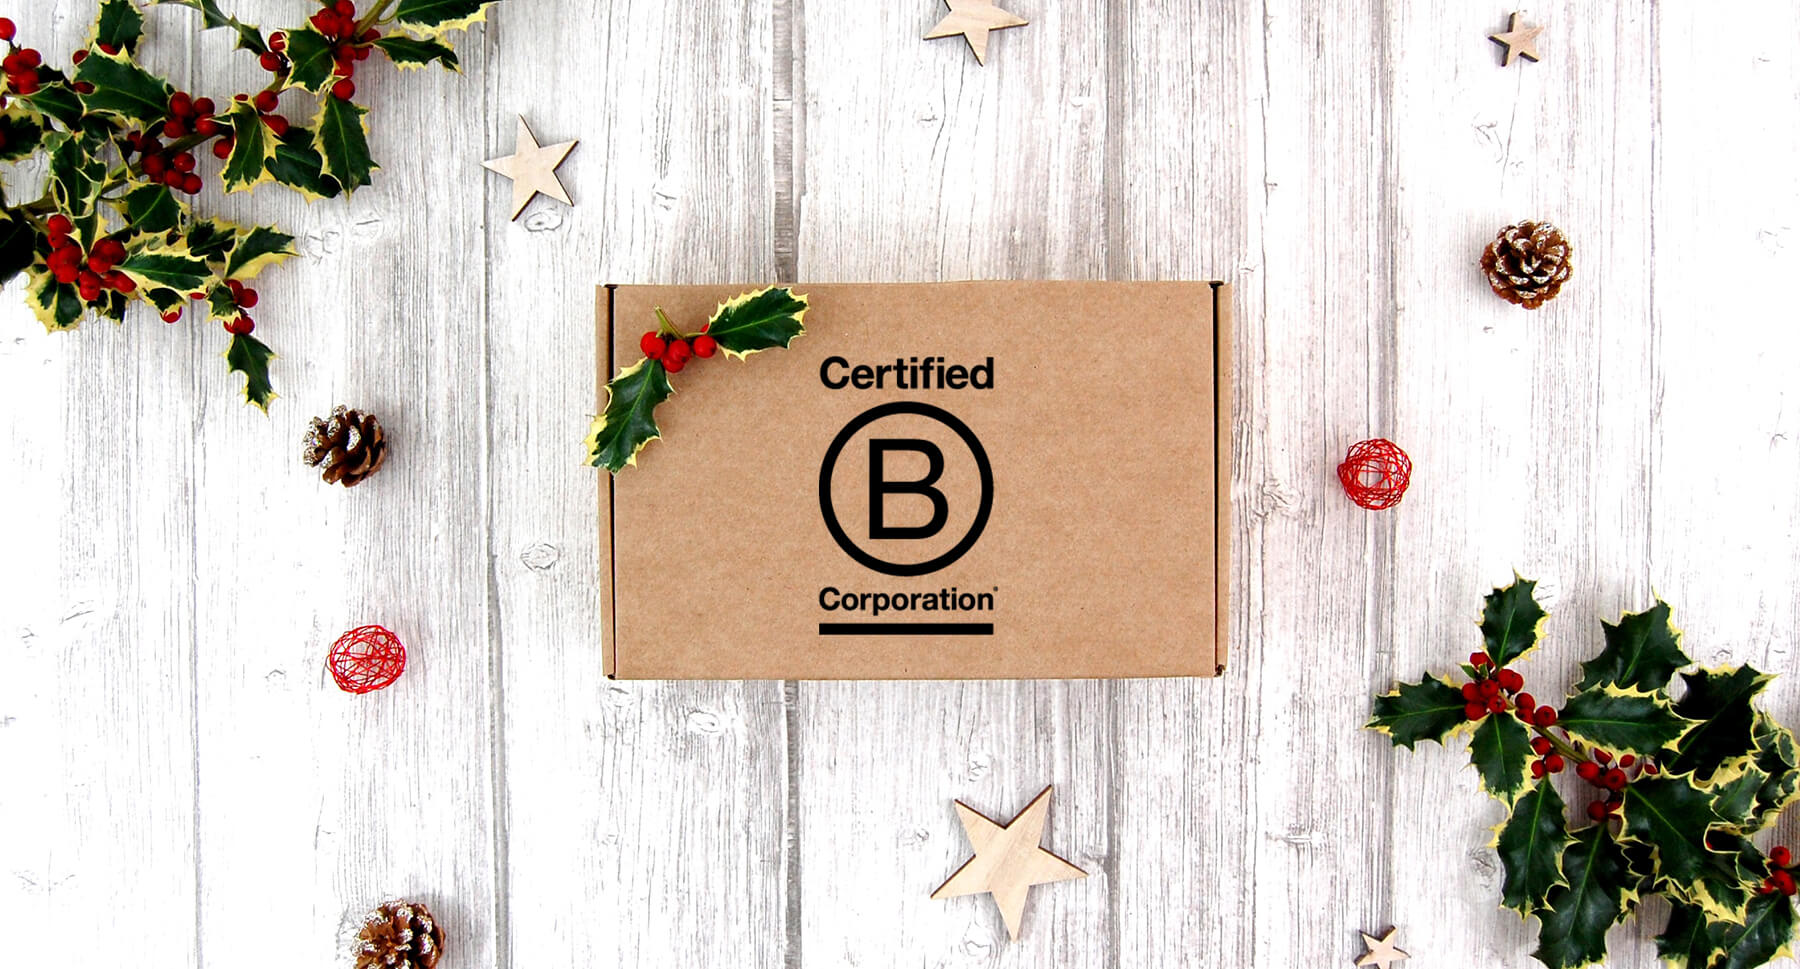 Shop local with B Corporation Gifts